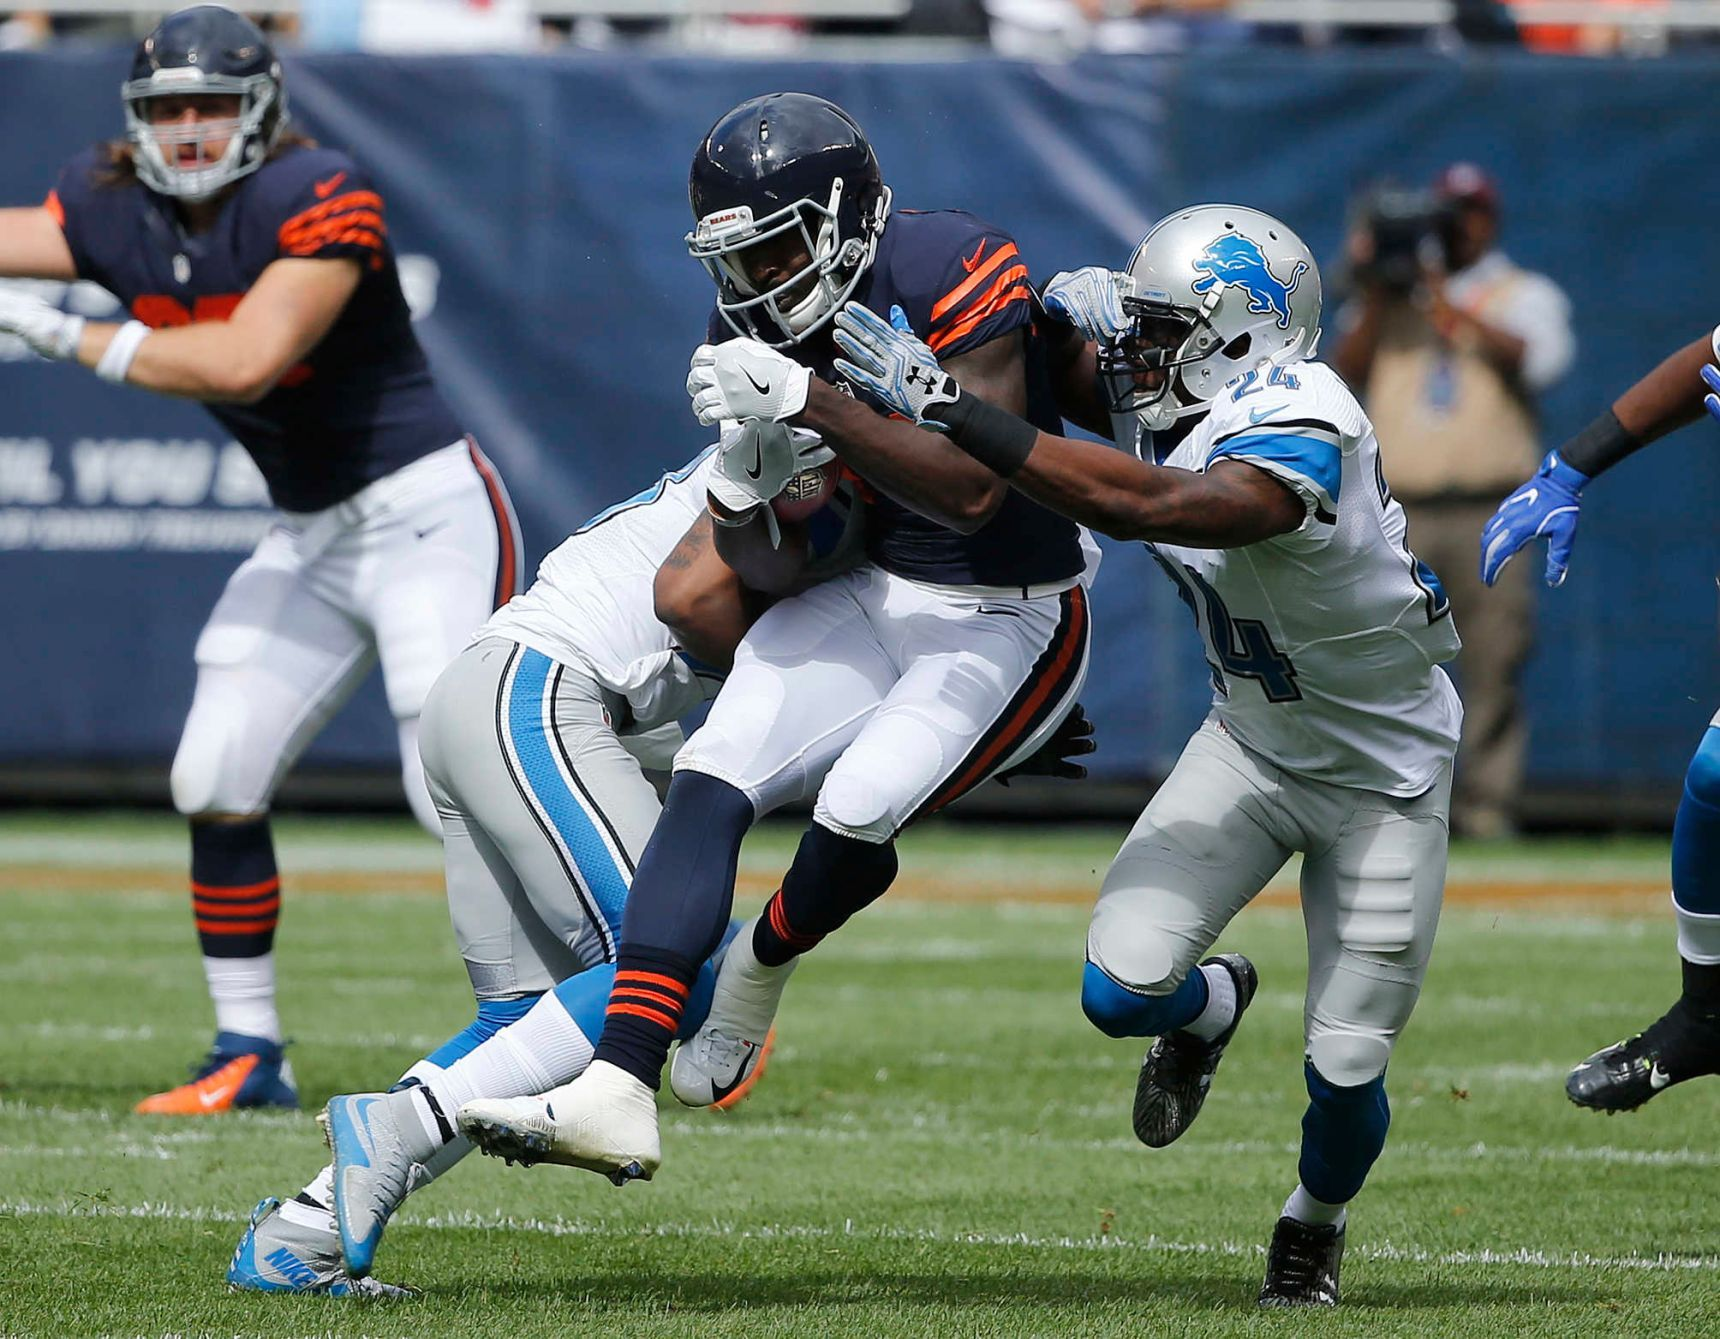 Hoyer Leads Bears Past Lions Nfl Football Games Detroit Lions Nfl